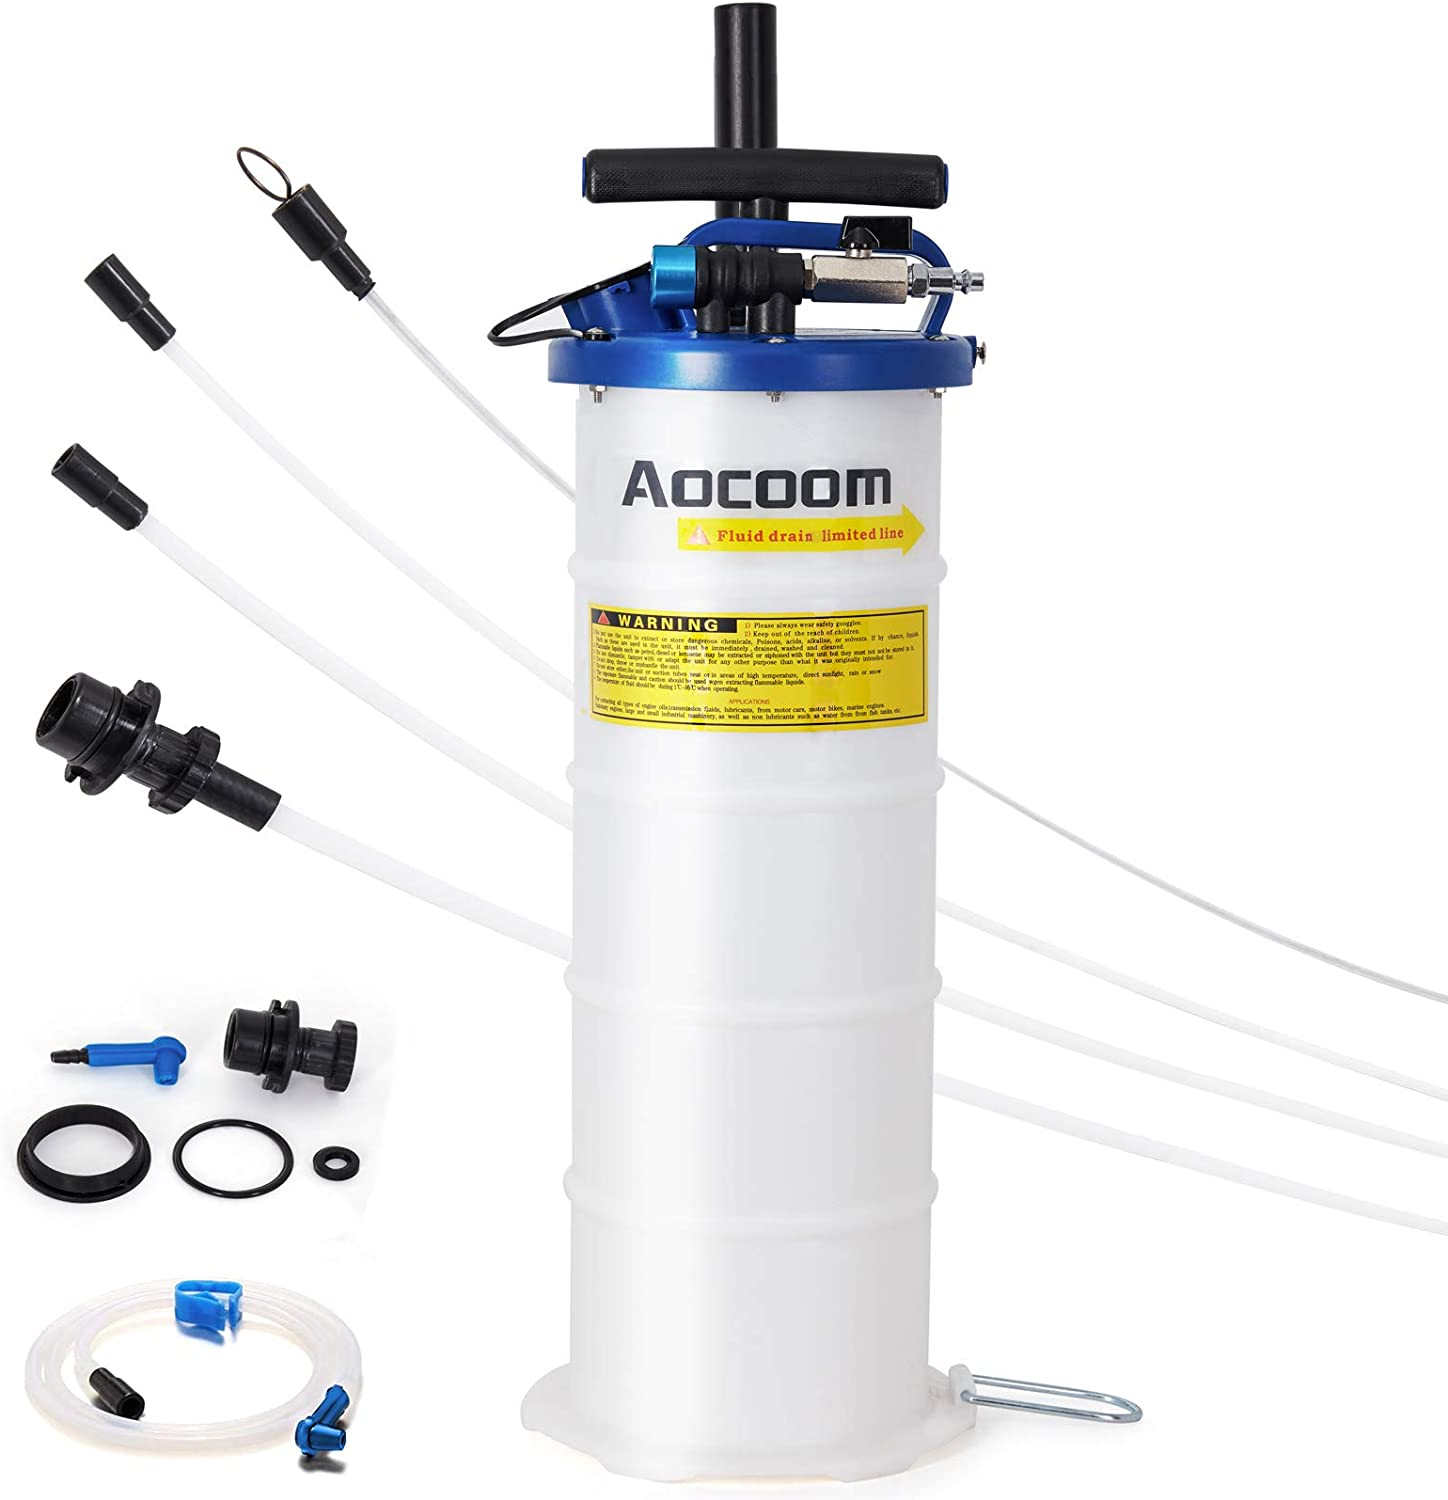 Aocoom 6.5 Liter Oil Changer Vacuum Transmission Fluid Extractor Pneumatic/Manual Fluid Evacuator with Pump Tank Remover and Brake Bleeding Hose Engine Oil Change & Fluid Change Tool